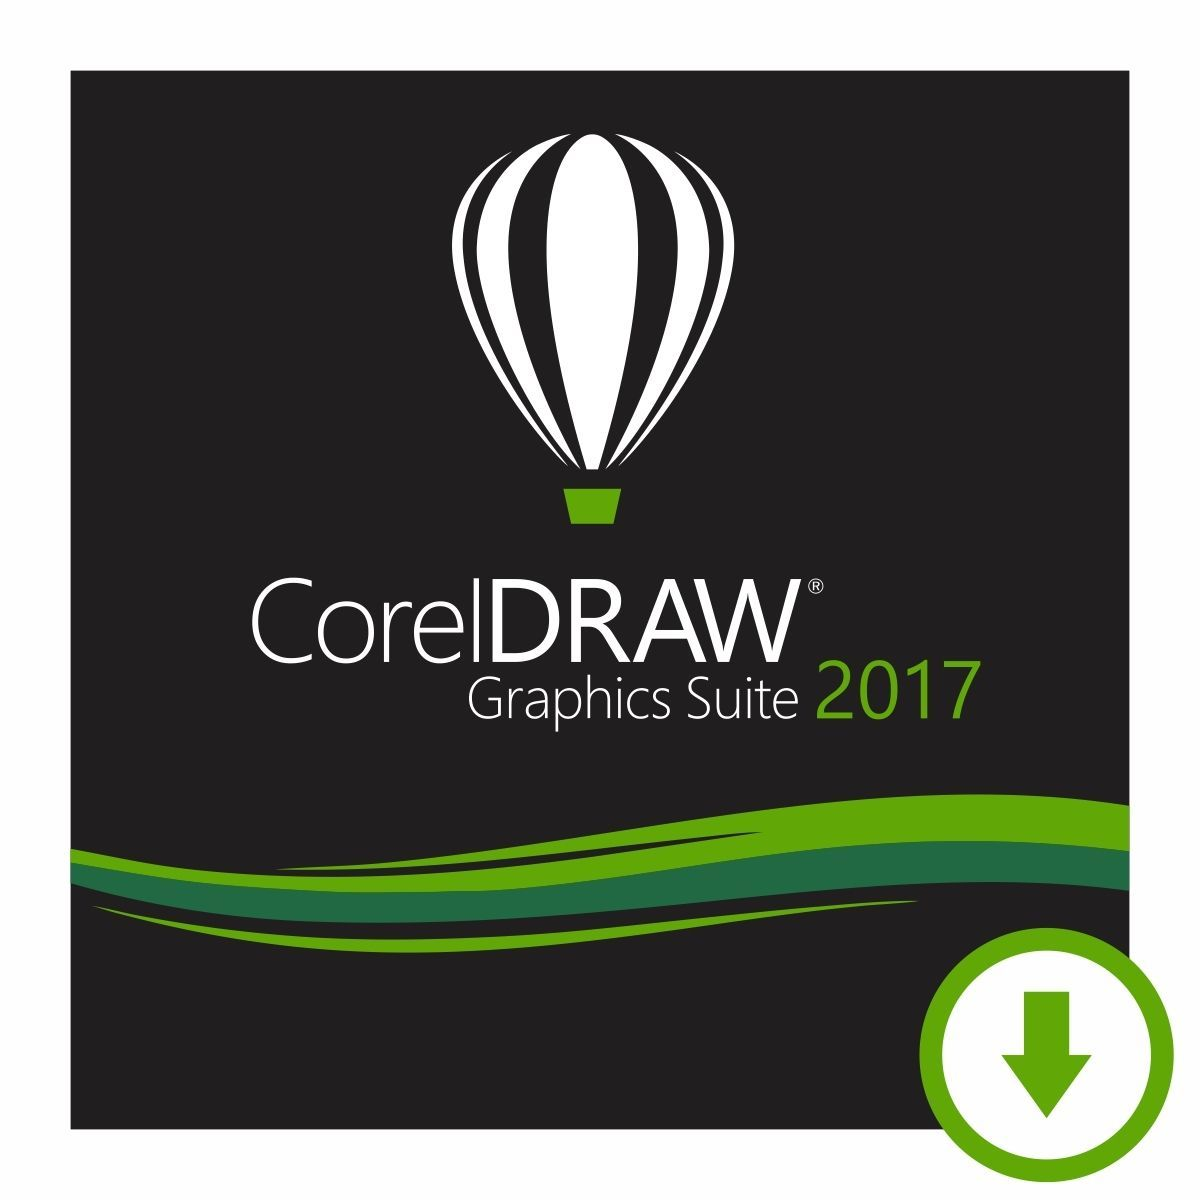 Corel draw graphics suite 2017 wordperfect office 8x standard corel draw graphics suite 2017 wordperfect office 8x standard win publicscrutiny Choice Image